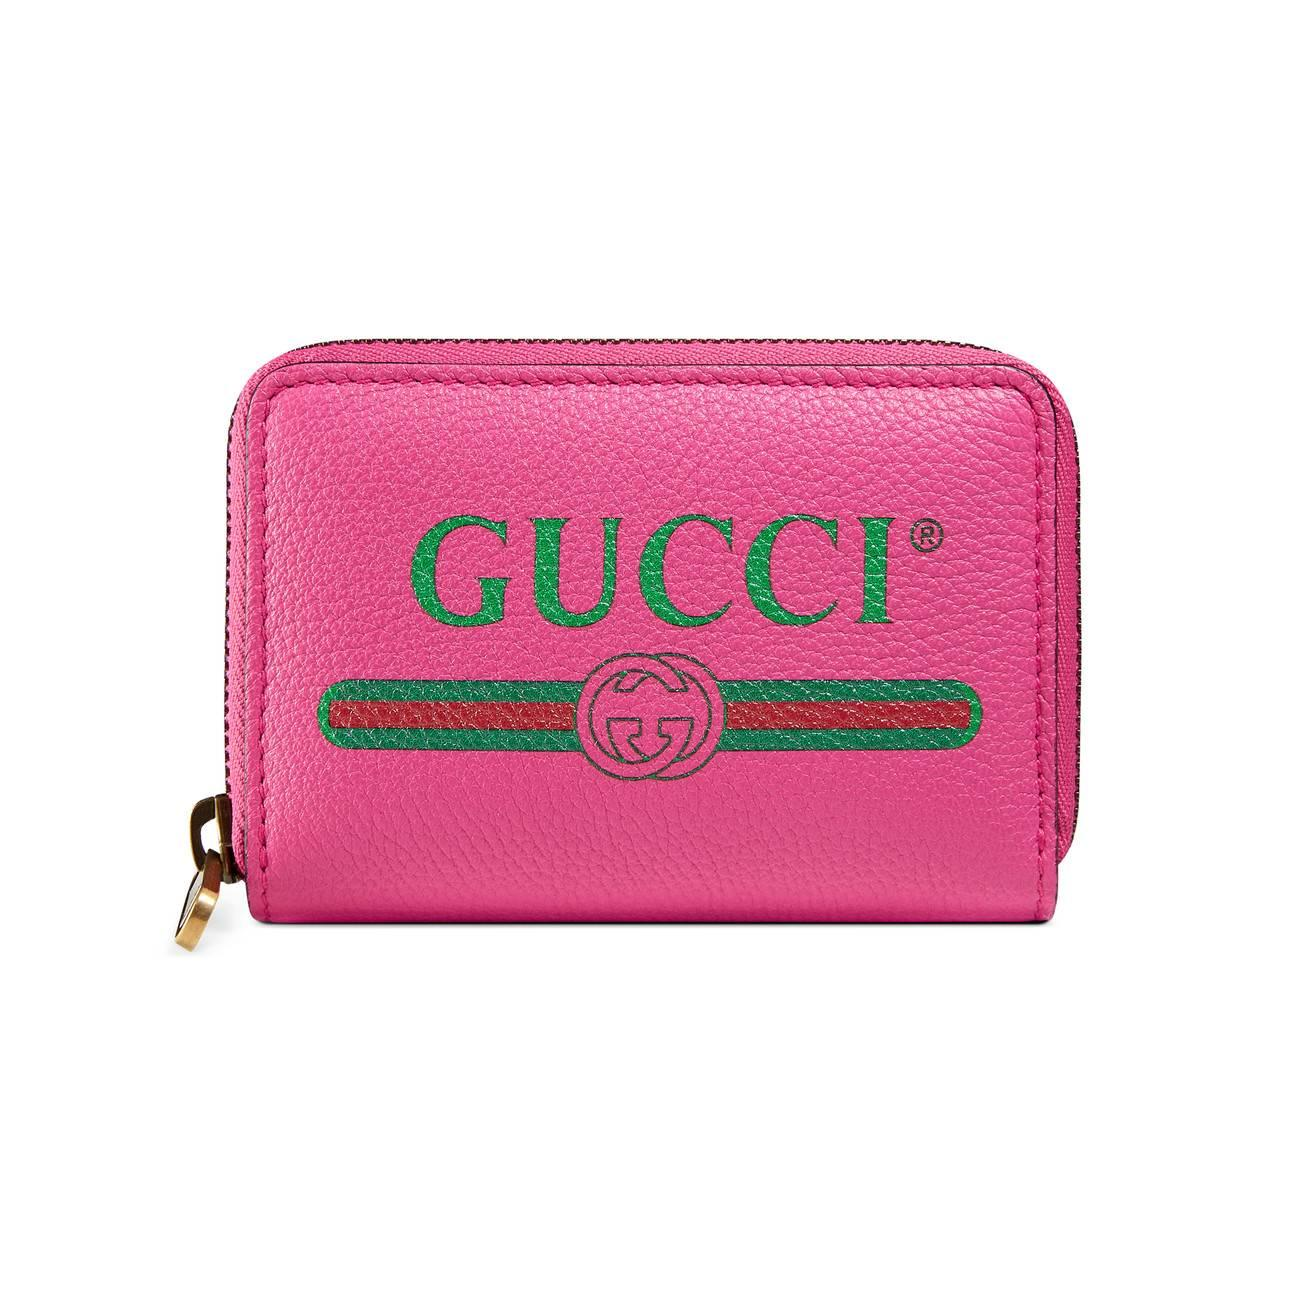 38bba6618d5 Gucci - Pink Print Leather Card Case - Lyst. View fullscreen